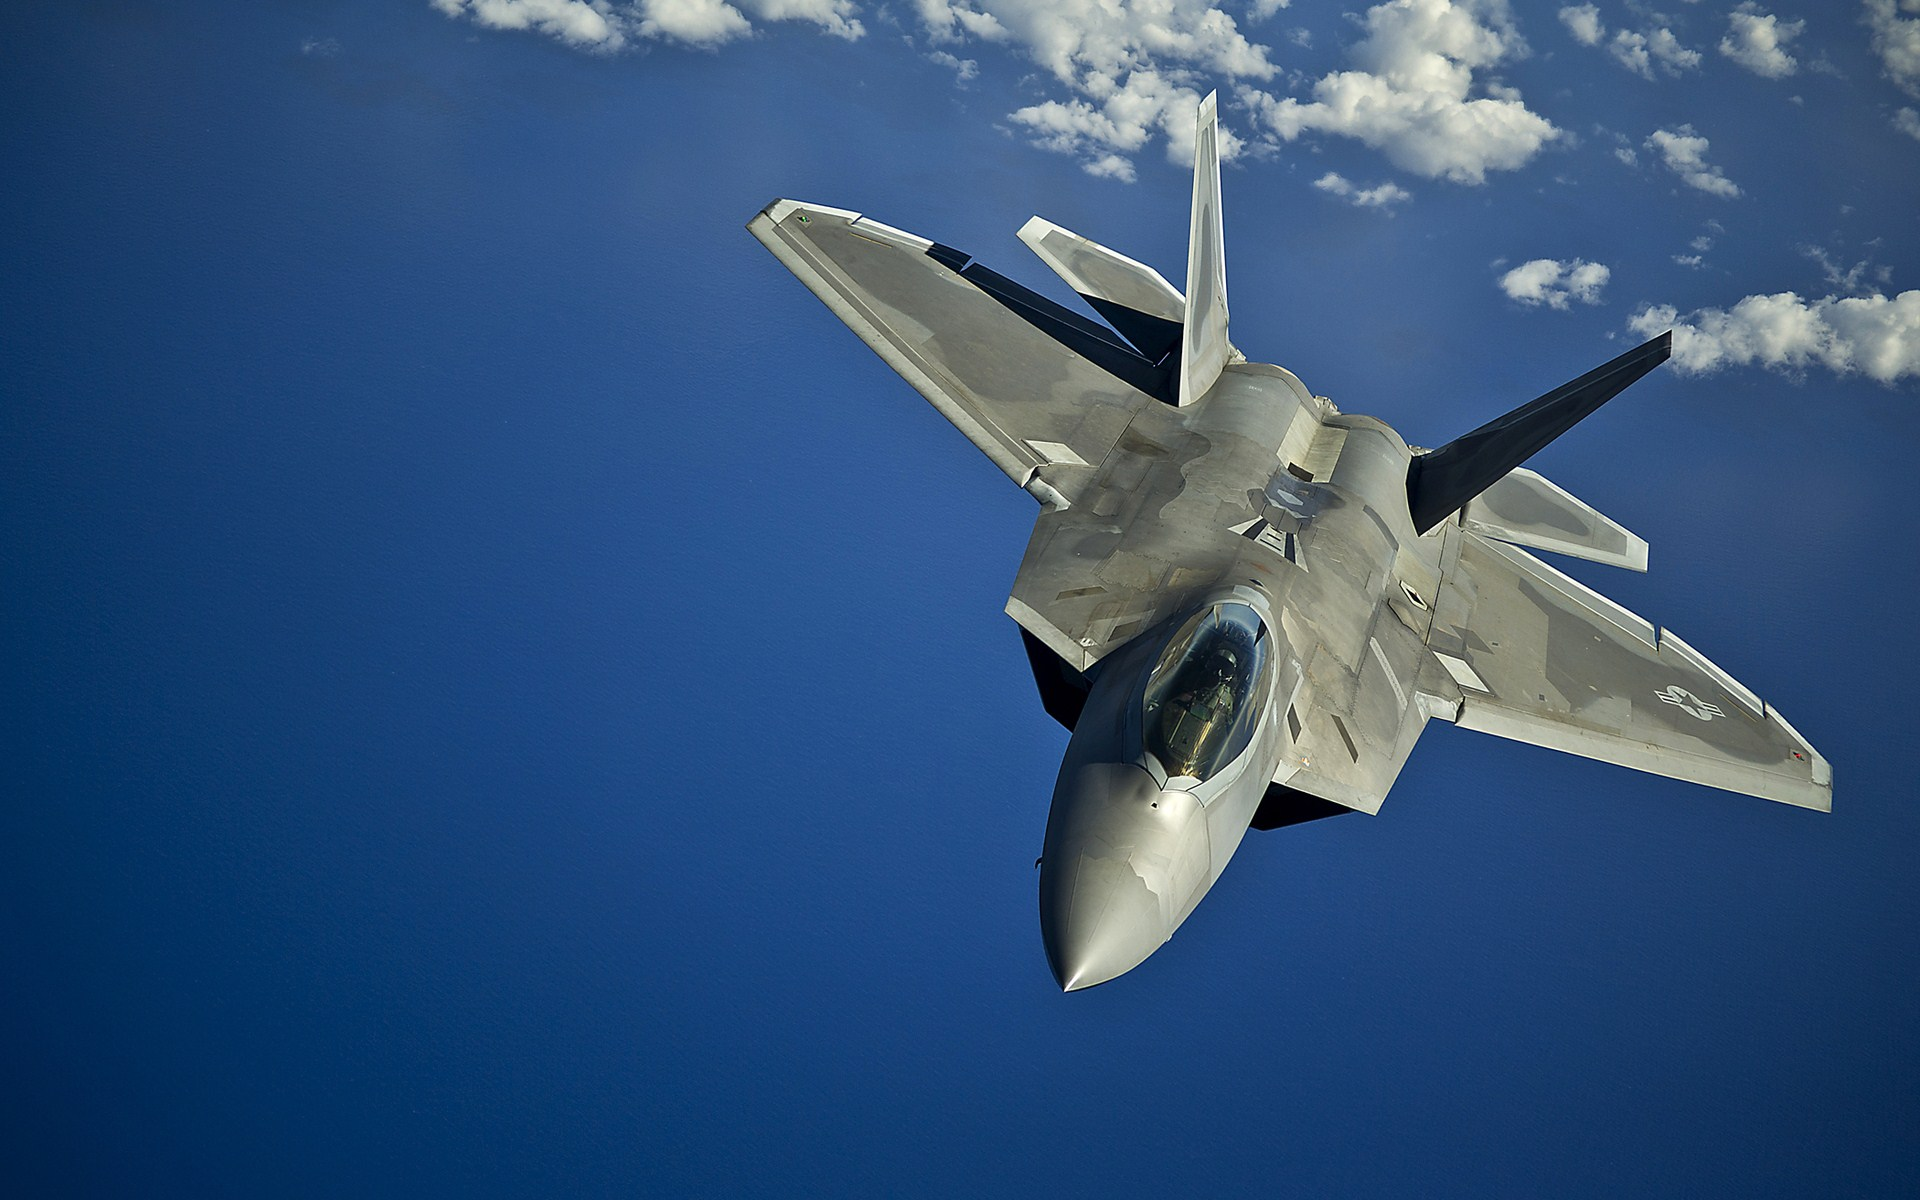 The Awesome F 22 Wide Desktop Background HD wallpapers